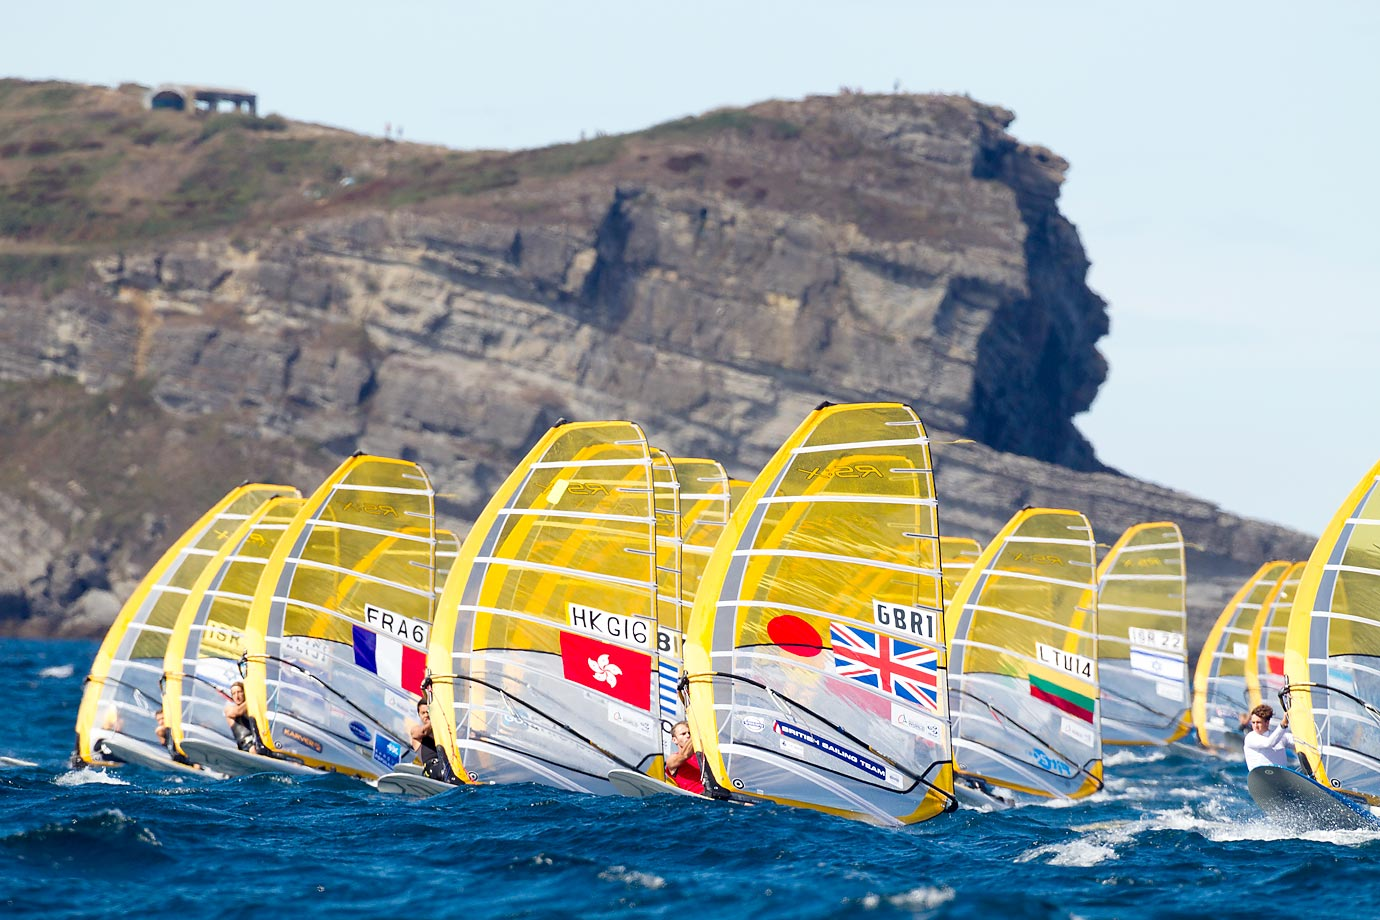 Nick Dempsey from the British Sailing Team during Day 6 of the 2014 ISAF Sailing World Championships.